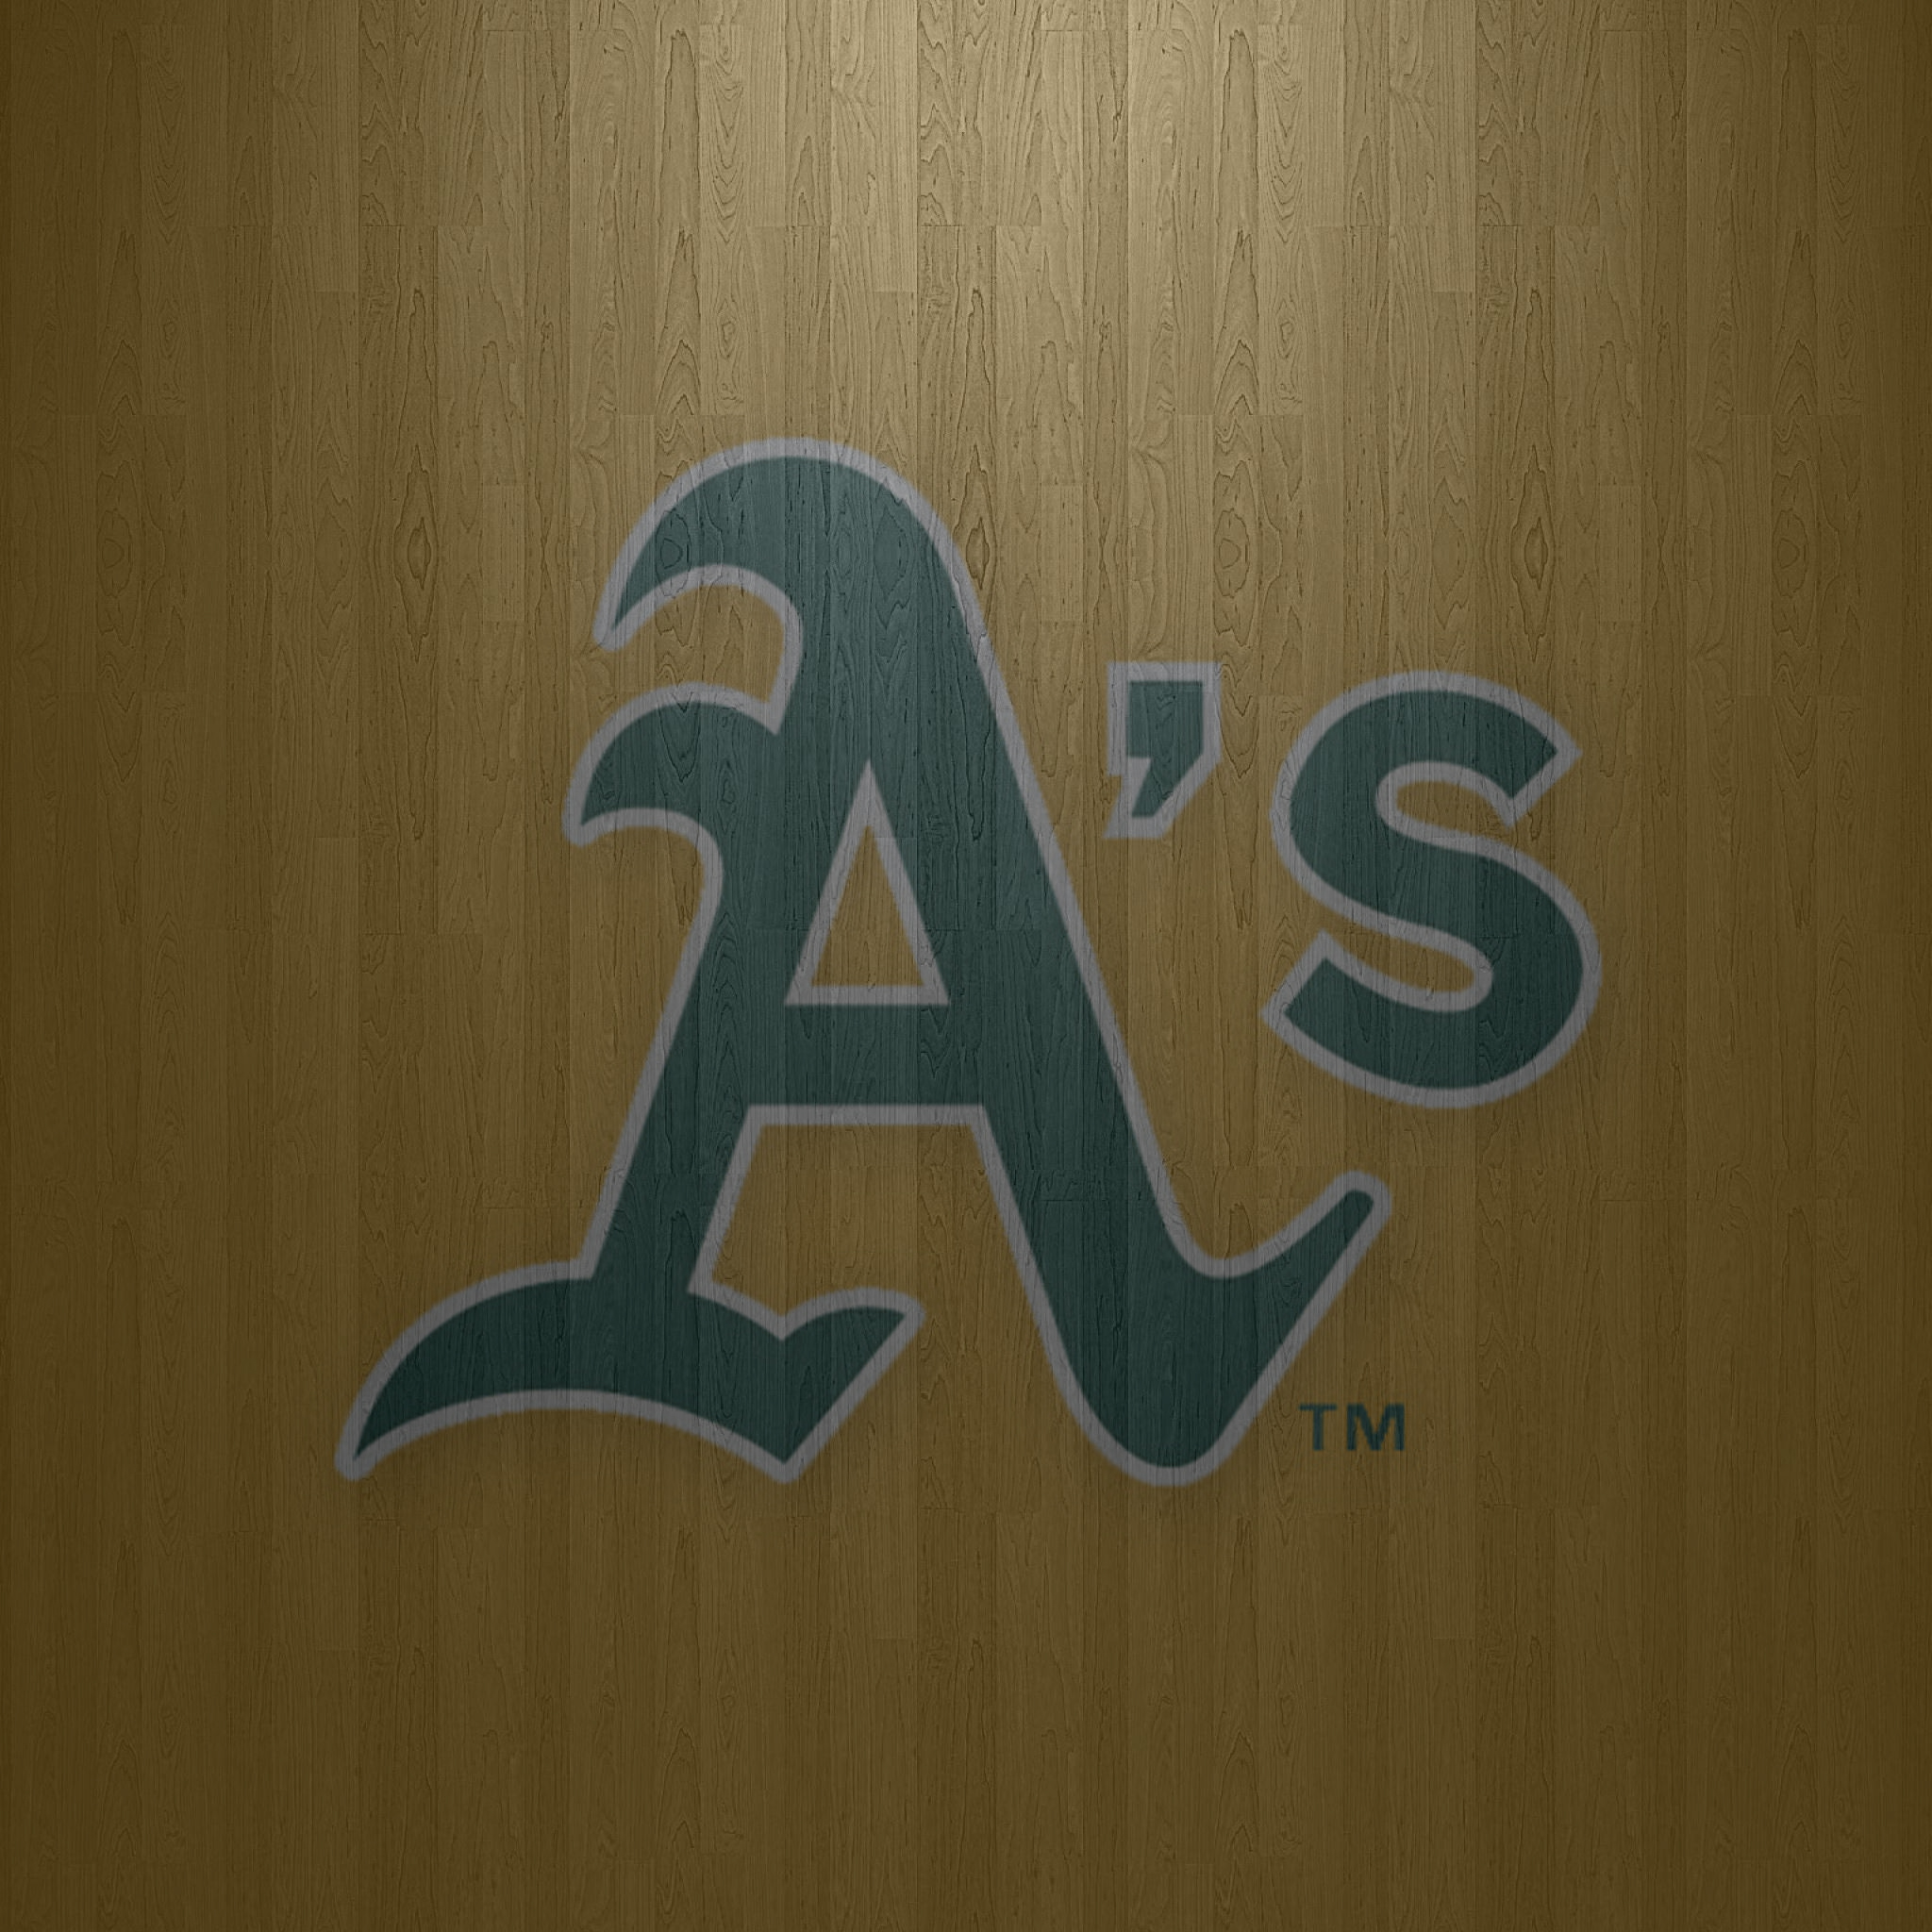 2048x2048 - Oakland Athletics Wallpapers 13